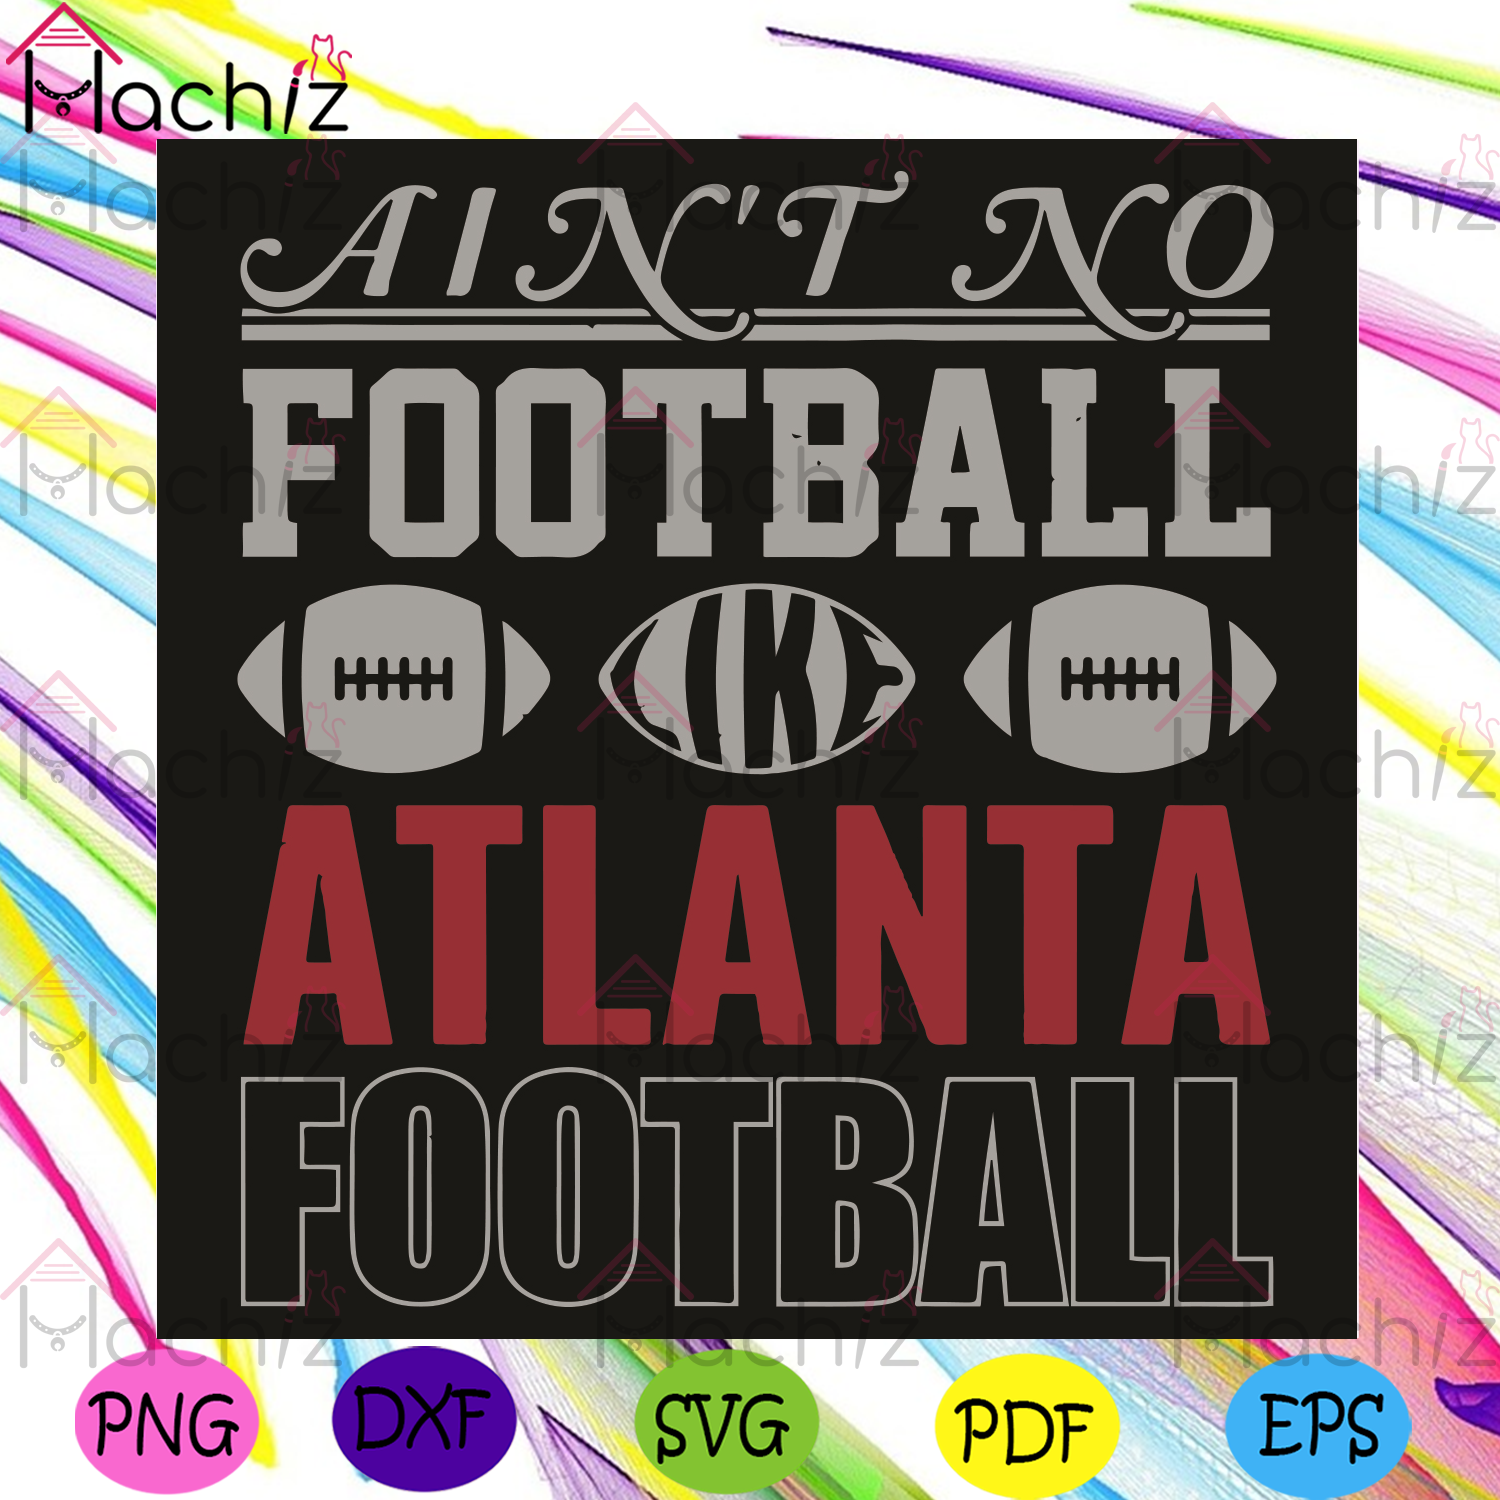 Aint No Football Like Atlanta Football Svg, Sport Svg, Atlanta Football Team Svg, Atlanta Football Svg, Atlanta Football Fans Svg, Atlanta Football Players Svg, Football Gifts, Football Lovers, Football Players Svg, Vintage Design Svg